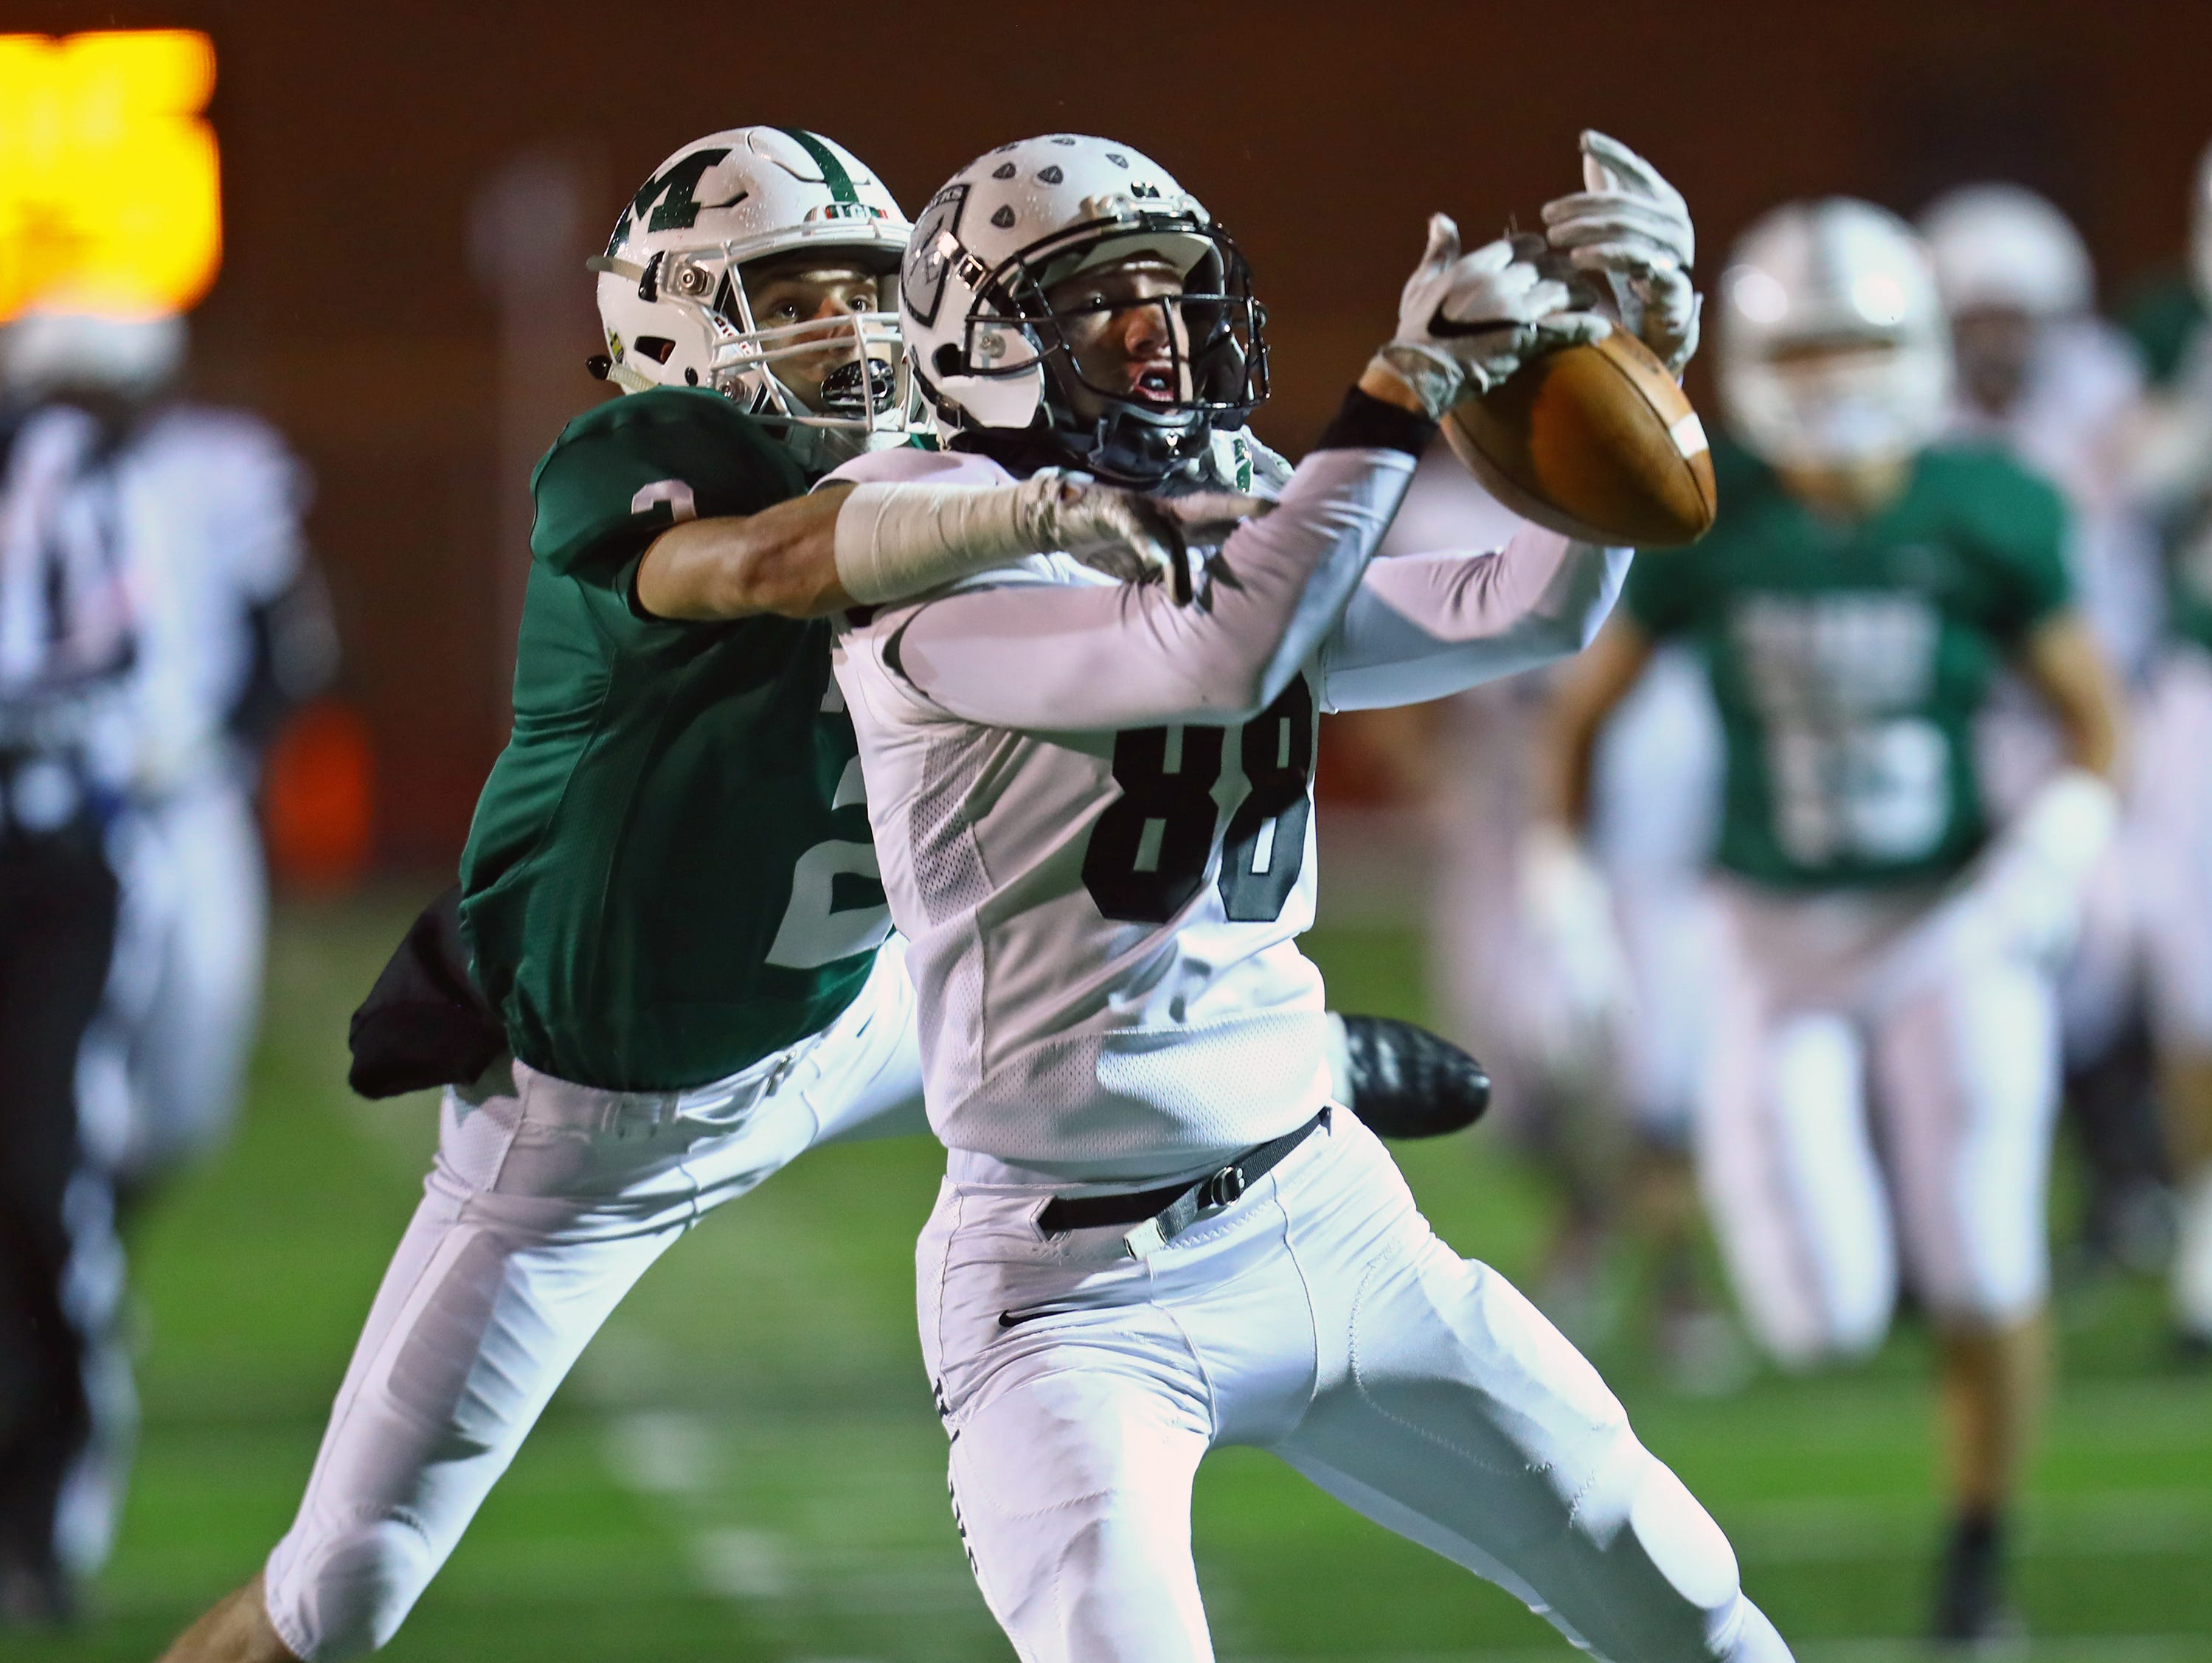 Lakota East TE Evan Yablonsky makes a catch for a first down and goal in the game between the Lakota East Thunderhawks and the Mason Comets.